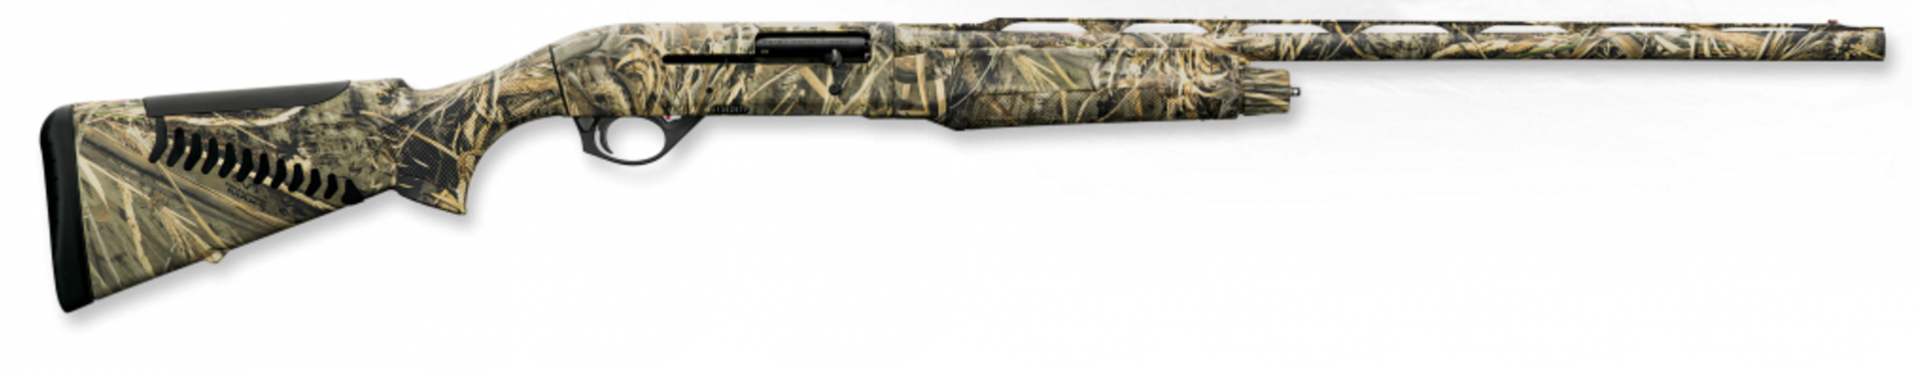 "M2 Field |12Ga, 28"" Barrel, 3"" Chamber, Realtree Max-5 Camo, Inertia-Driven Action, Synthetic Stock, Comfortech Recoil Reduction, C, IC, M, IM, F Crio Chokes, Shim Kit, 3+1 Capacity"